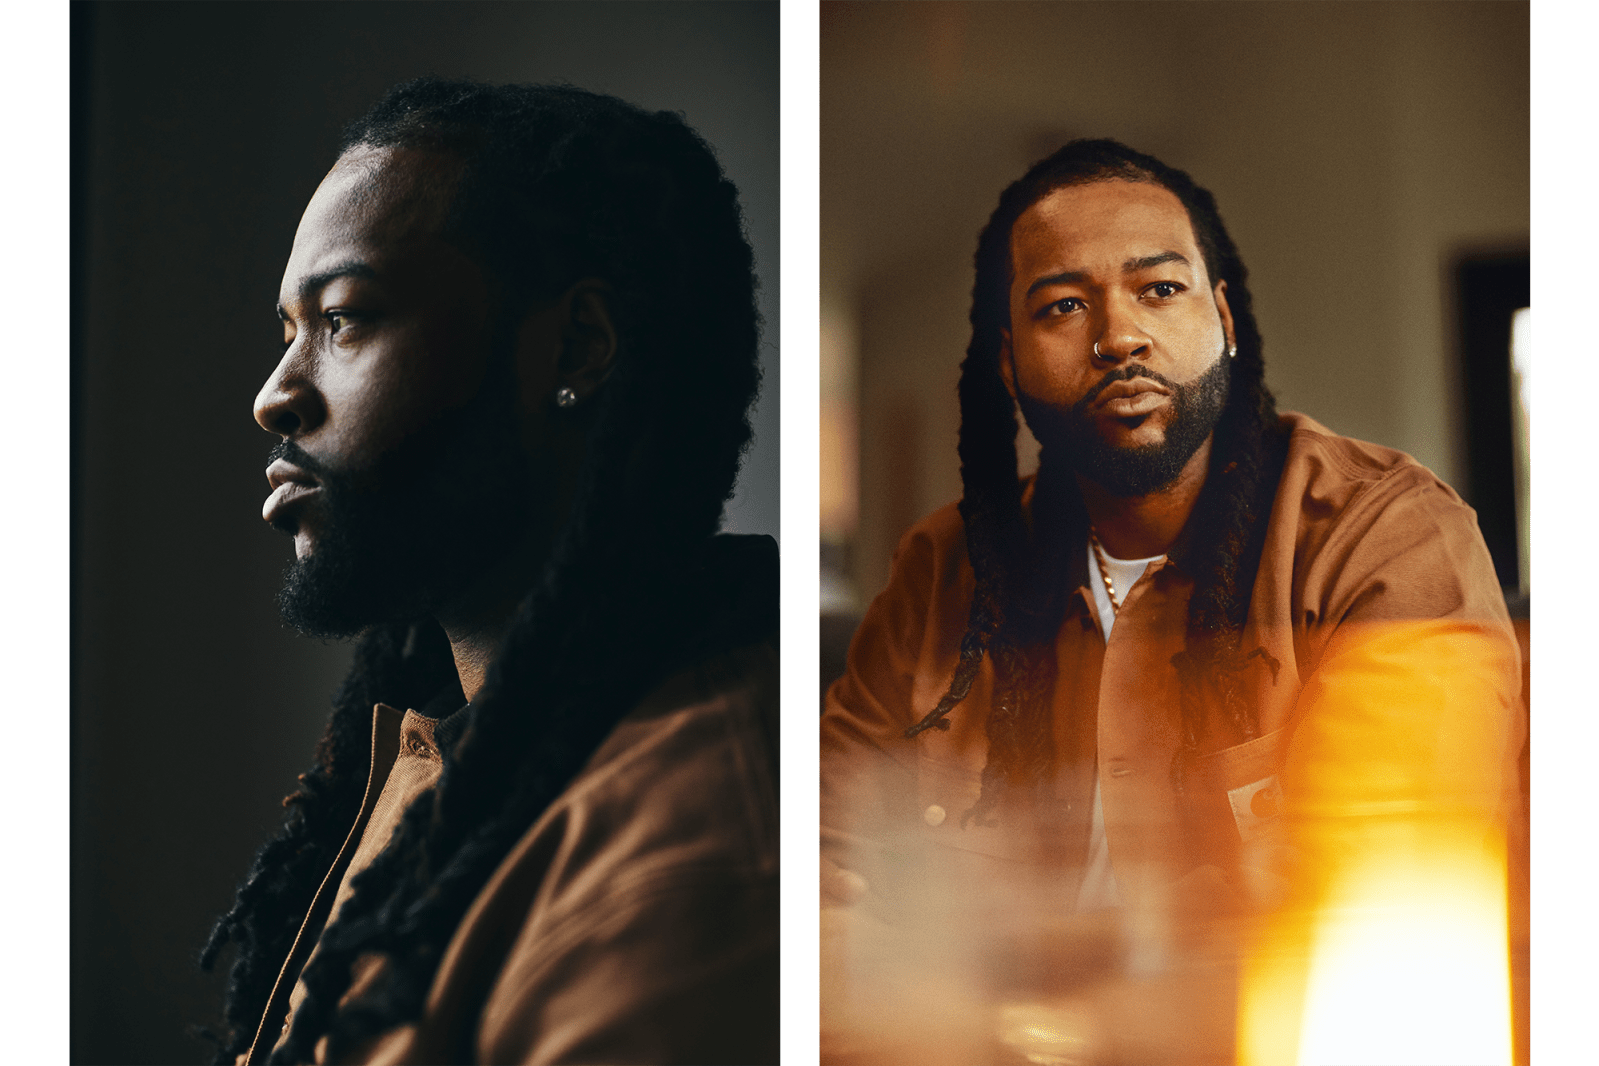 PARTYNEXTDOOR Interview Shaping New Album PartyMobile Toronto Ontario Canada Party Mobile Best Friend Loyal Drake Rihanna P3 P2 P1 OVO Octobers Very Own HYPEBEAST Jamaican Reggae Dancehall RnB Singer Songwriter